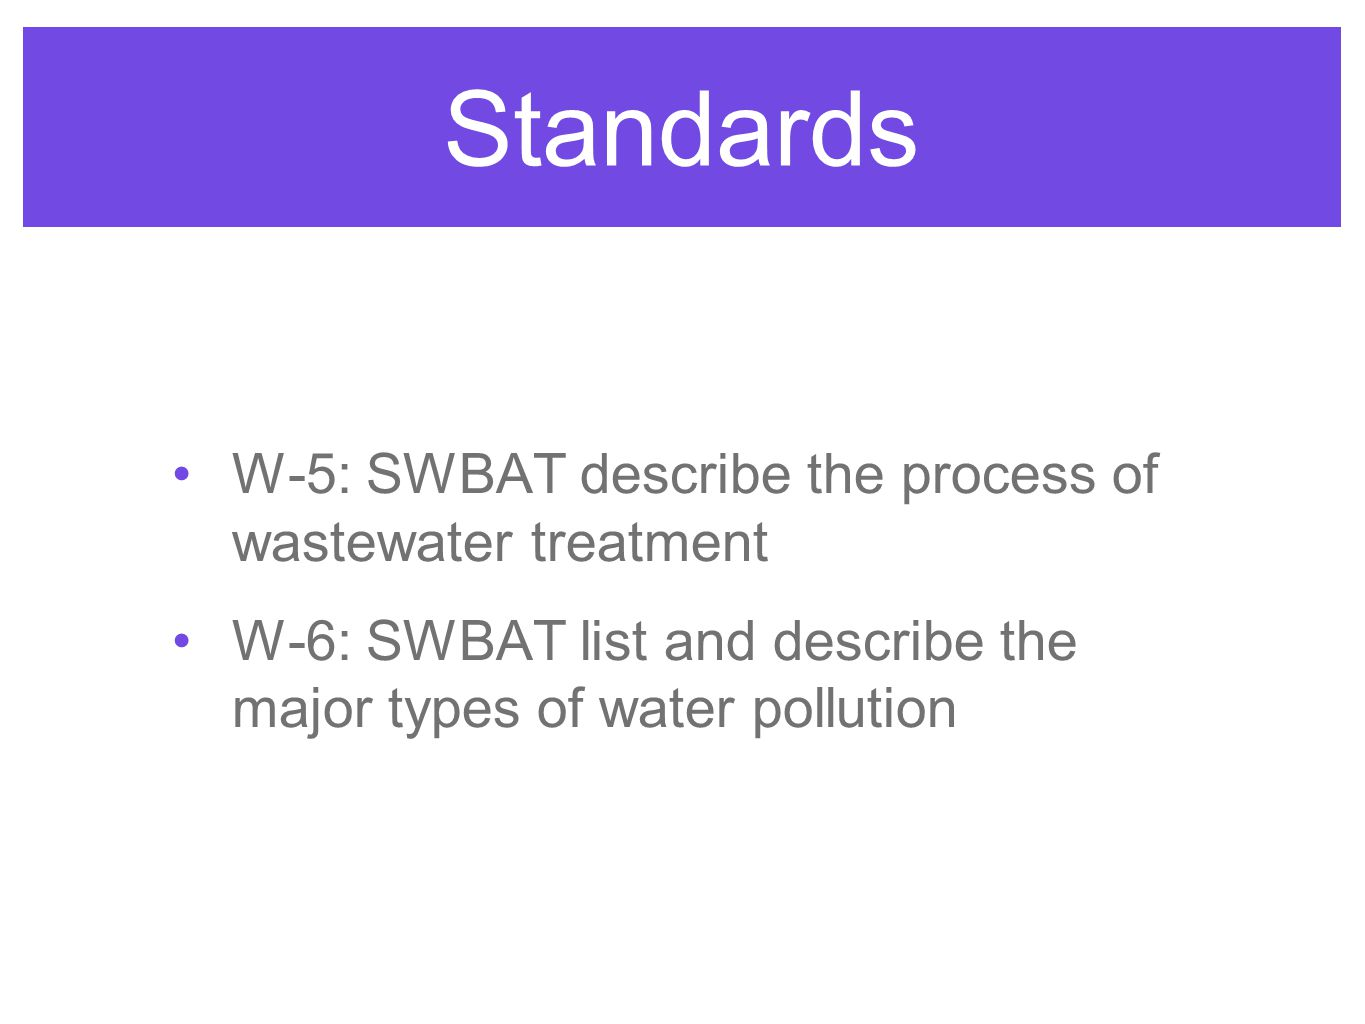 Standards W-5: SWBAT describe the process of wastewater treatment